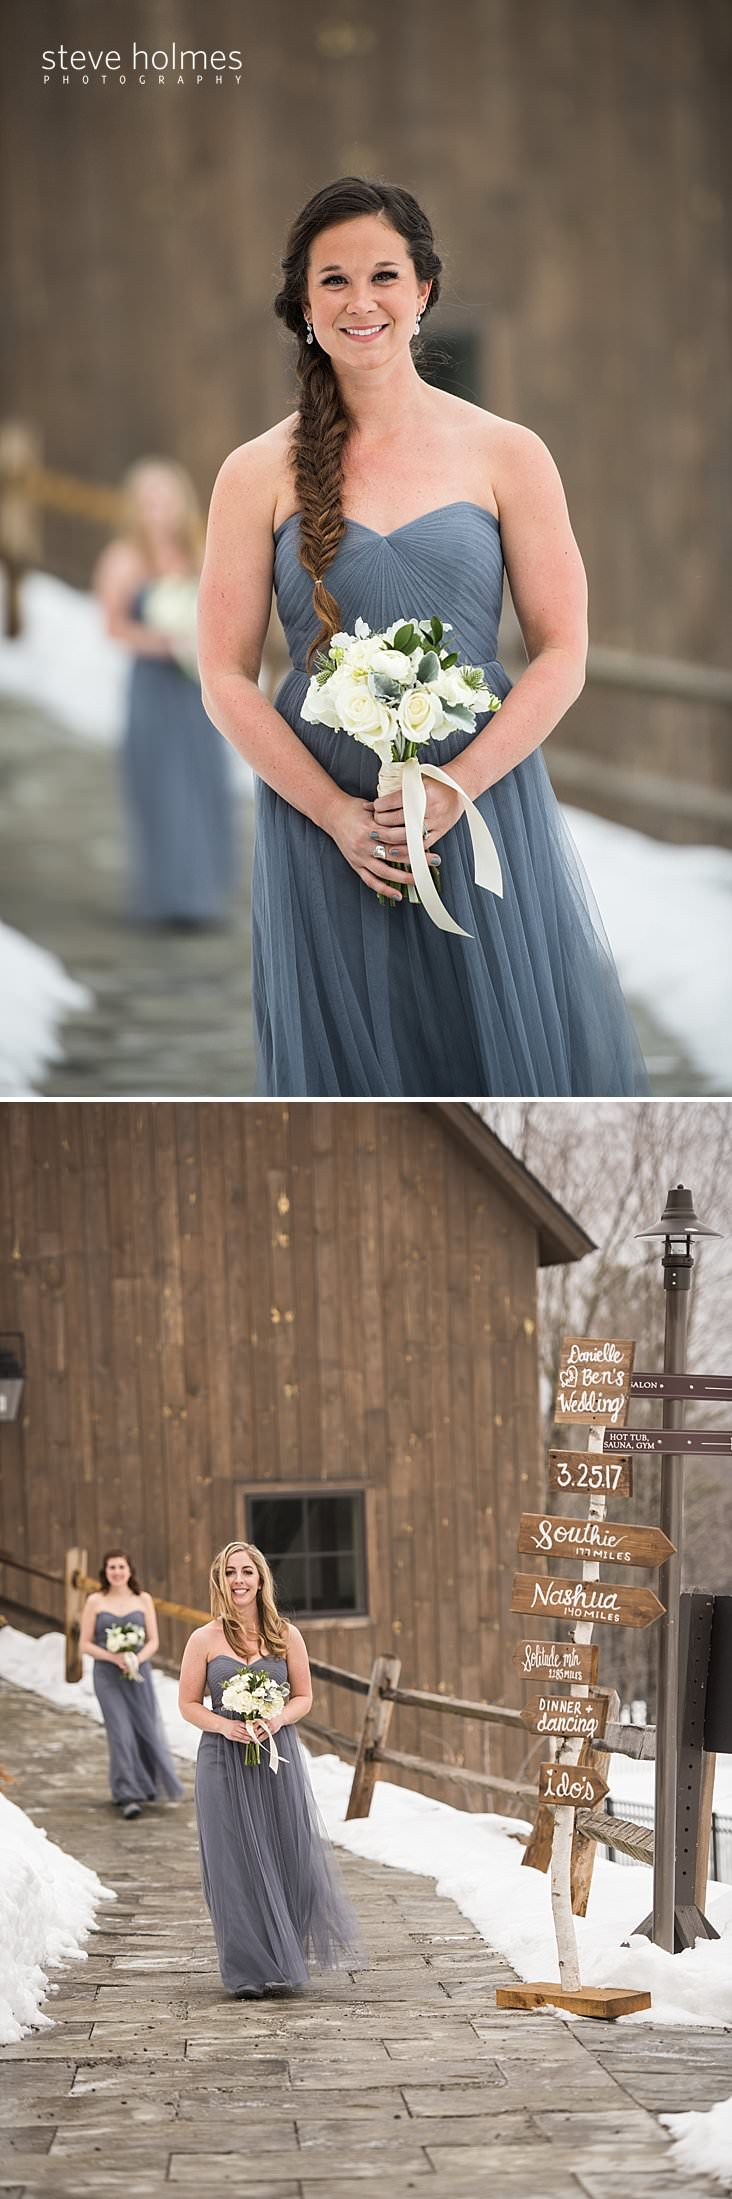 21_Brunette bridesmaid with fishtail braid walks to ceremony.jpg